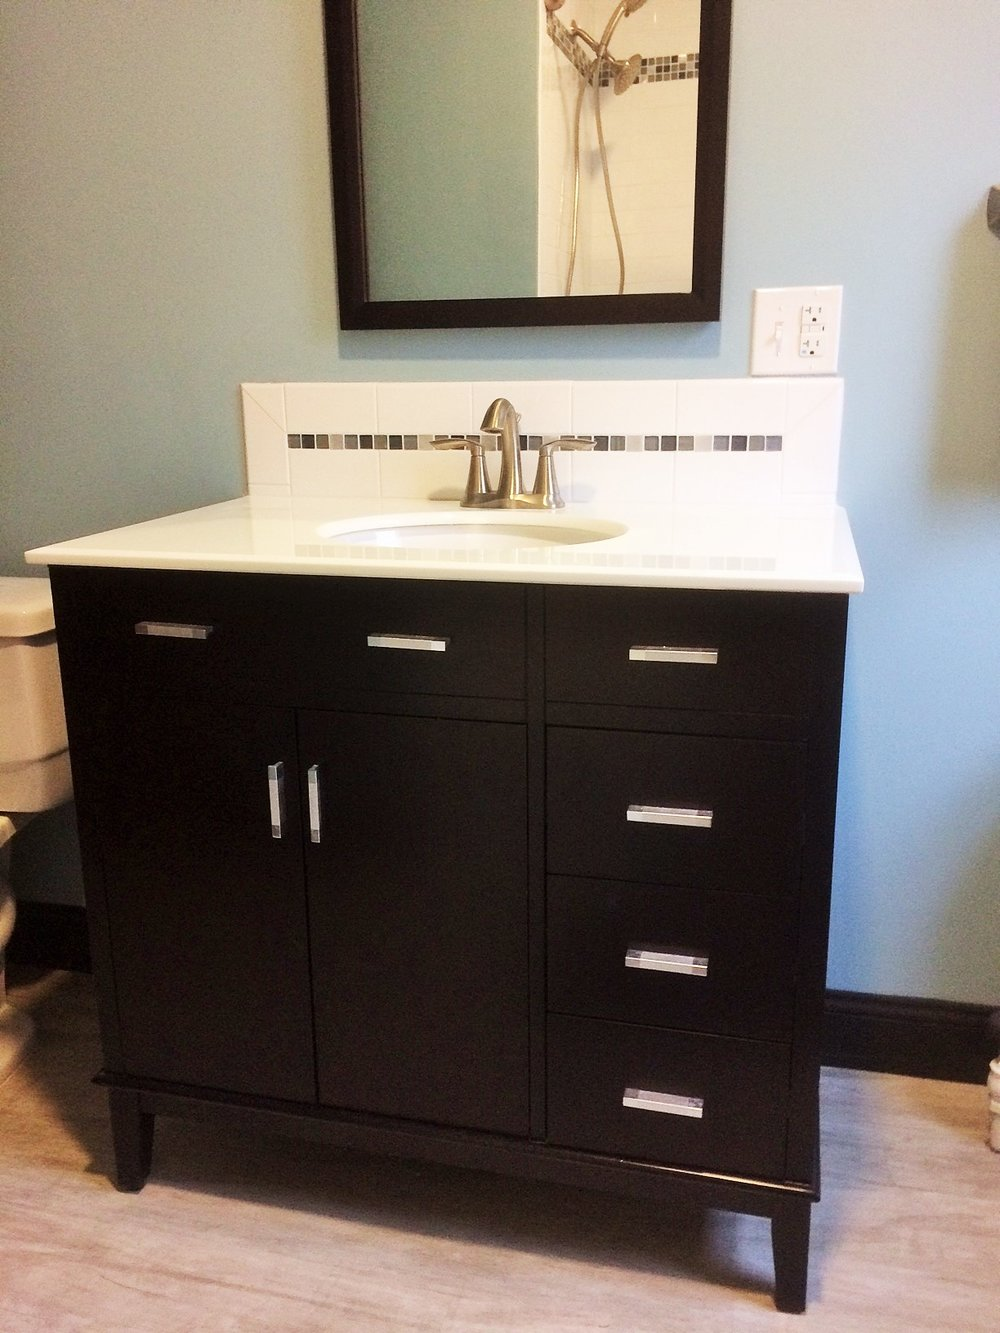 bathroom remodel Worcester ma 1.jpg